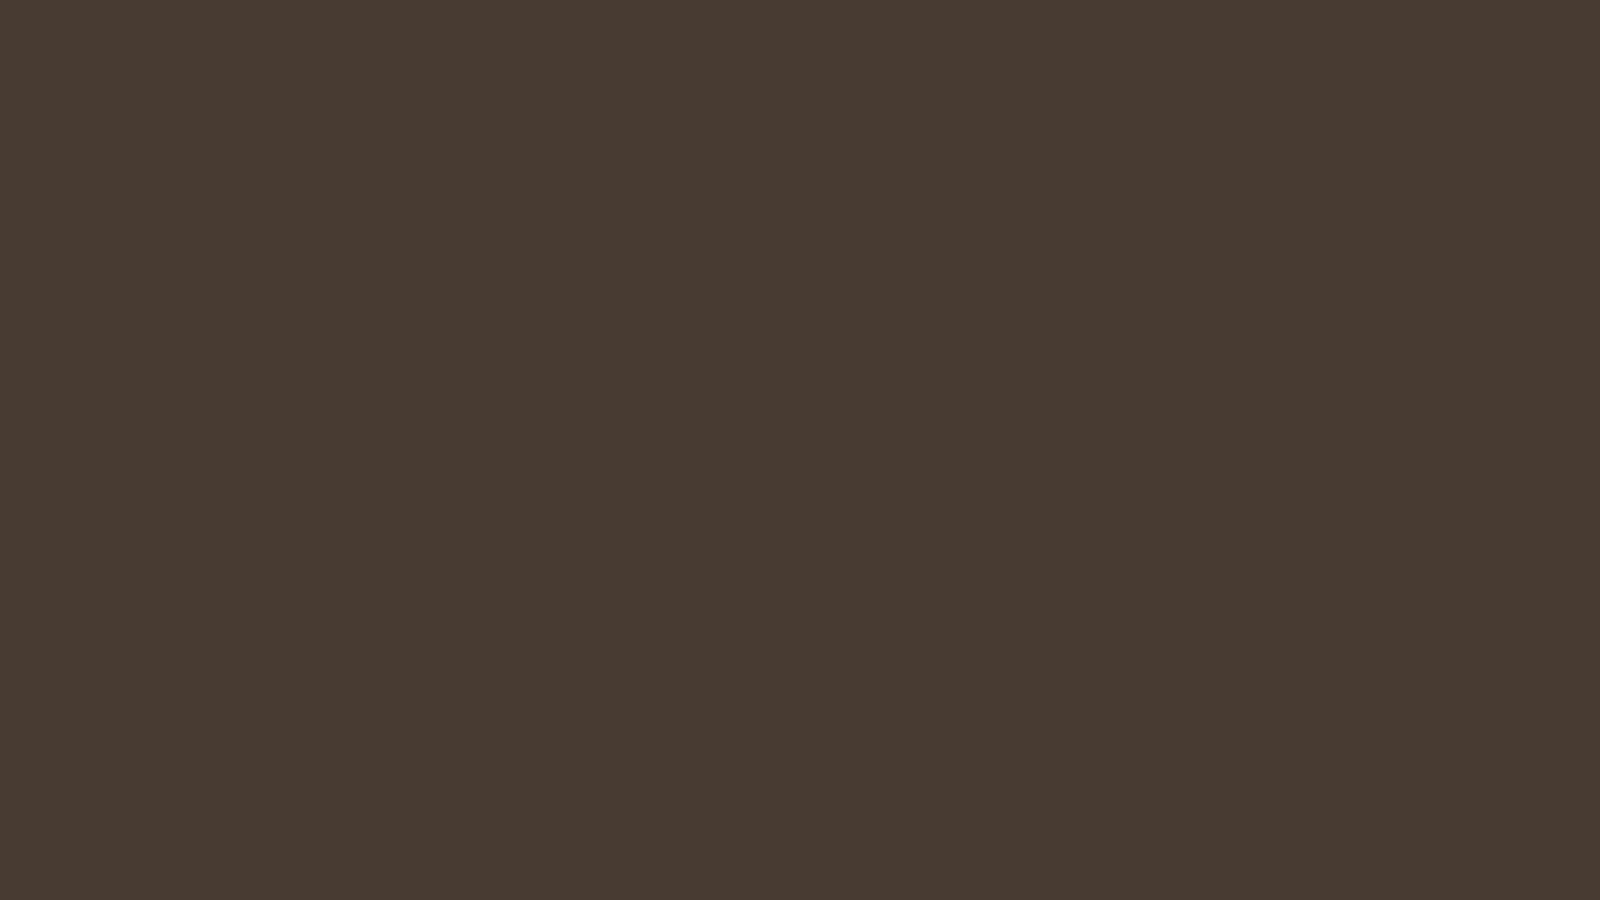 1600x900 Dark Taupe Solid Color Background